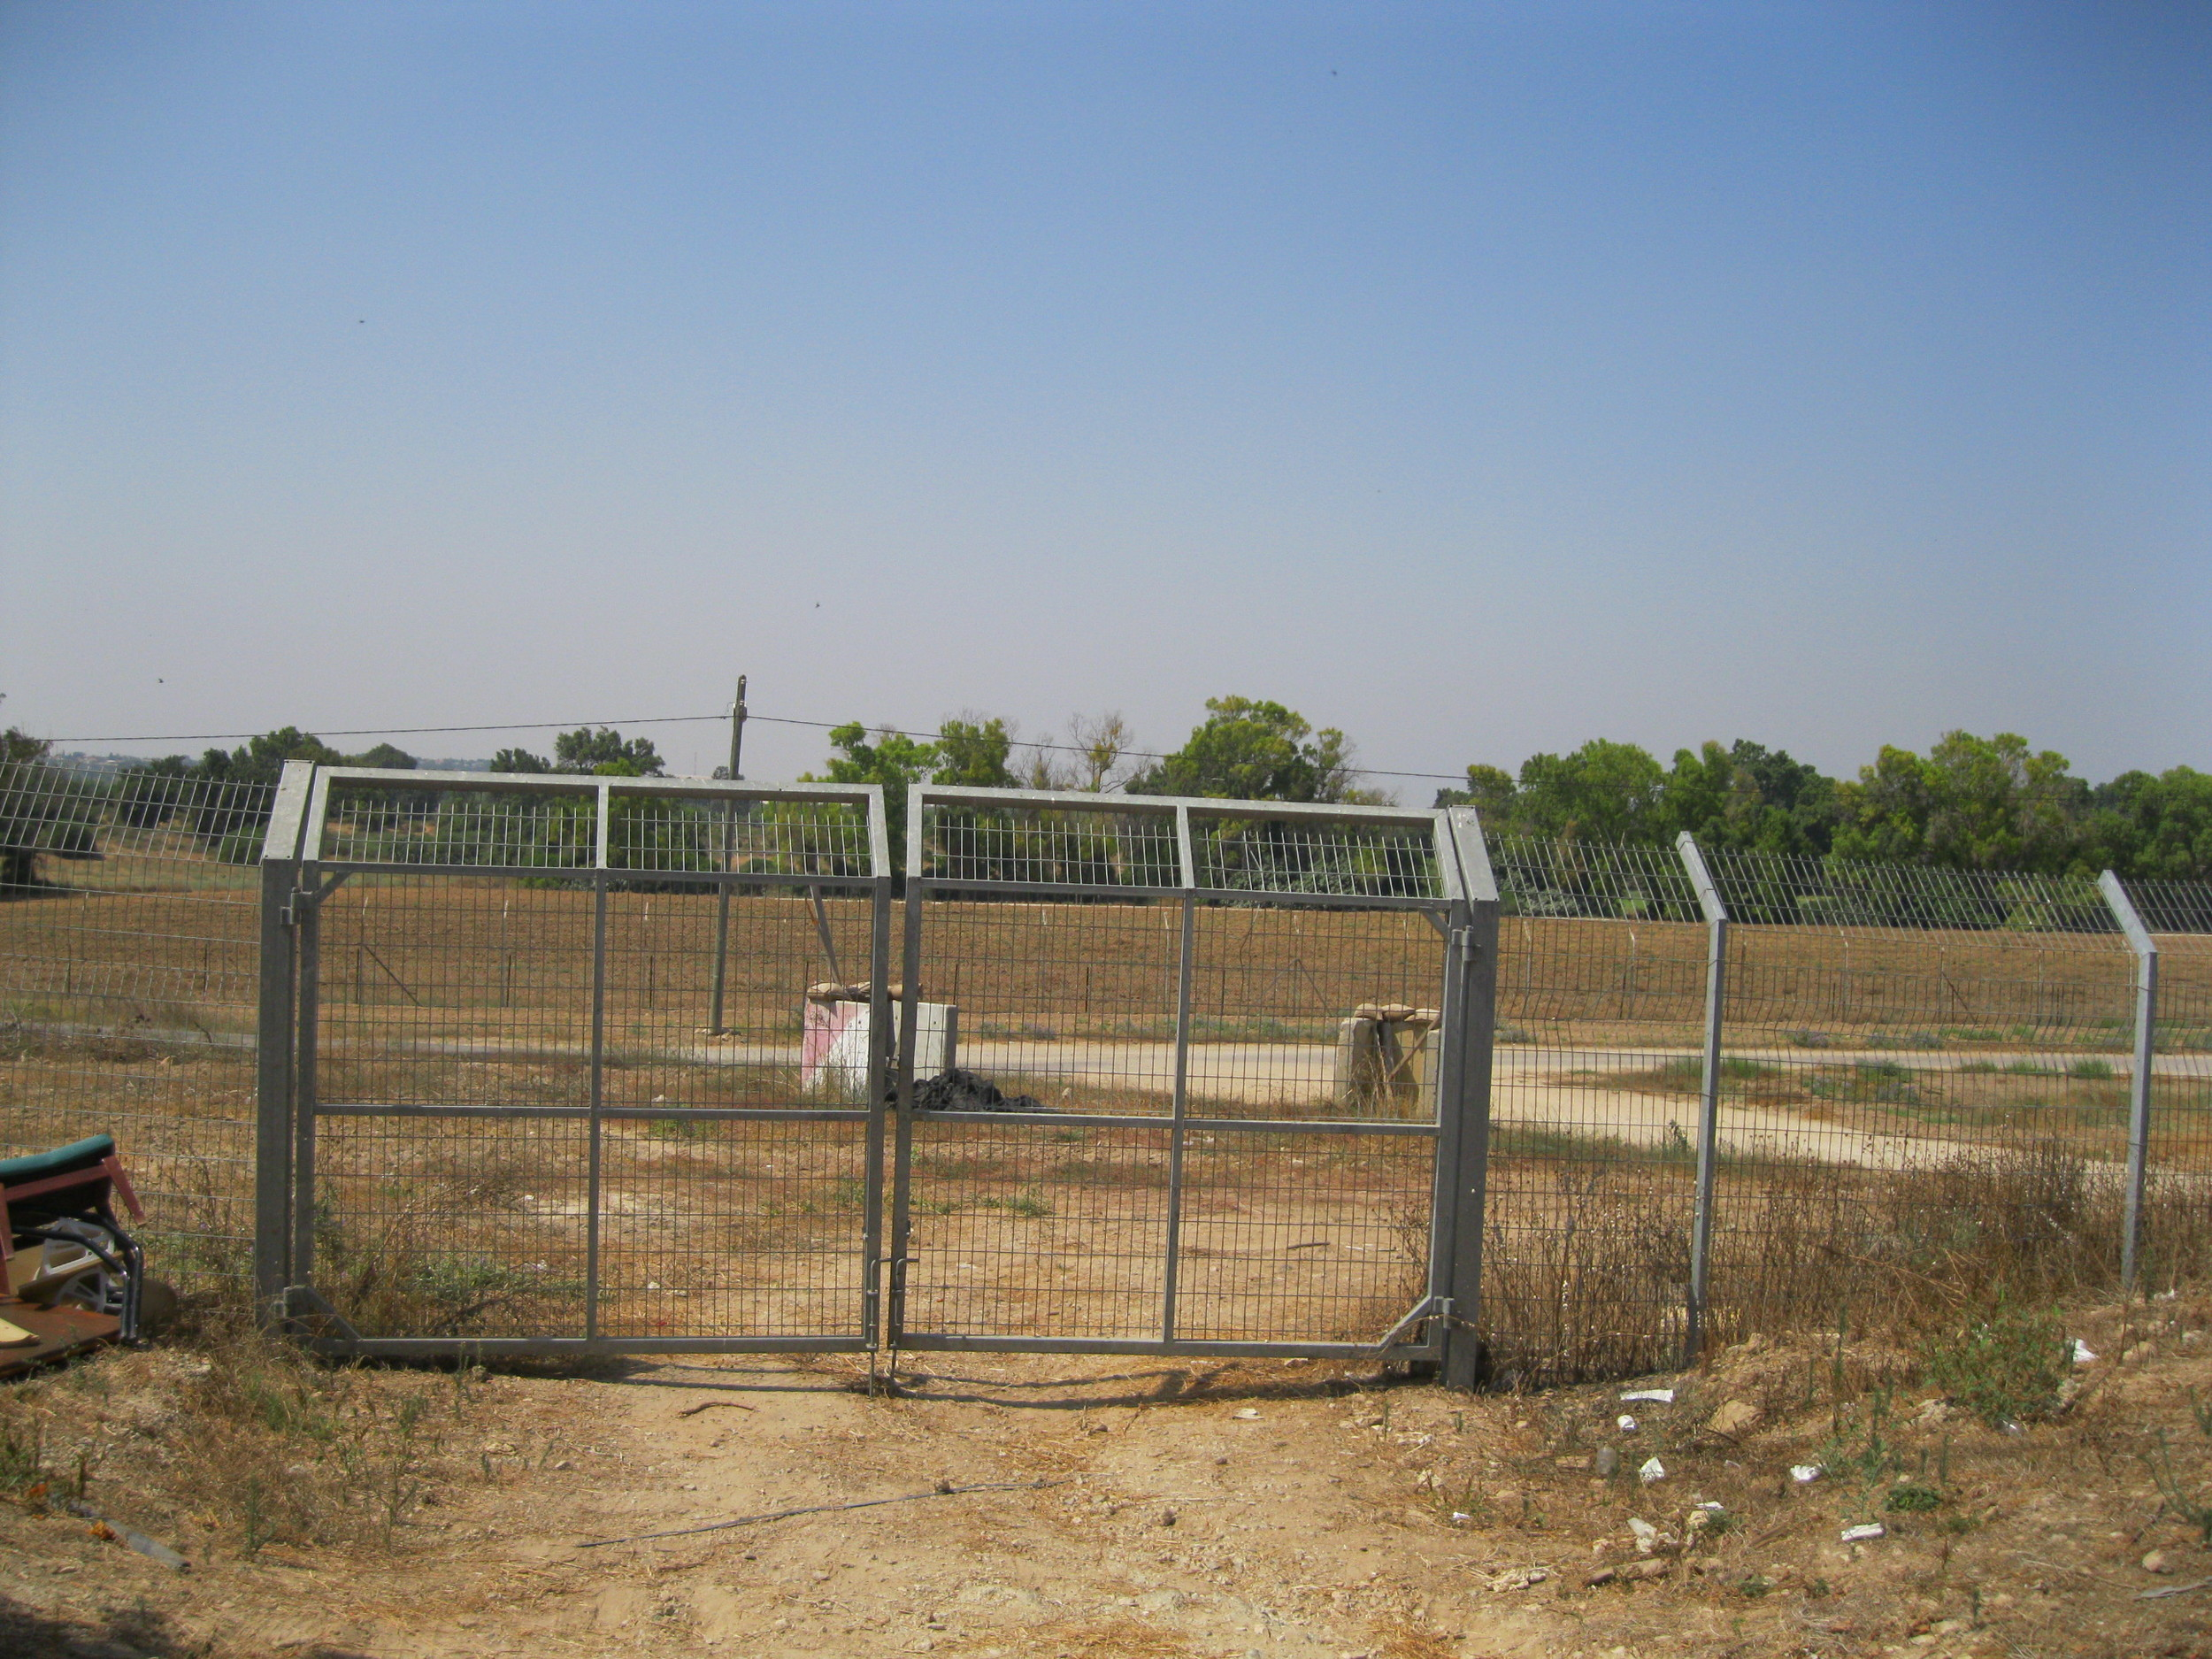 In the 2014 war, just outside this fence to the kibbutz, the Israeli Defense Force used this area as an outpost.  See next photo for close up.